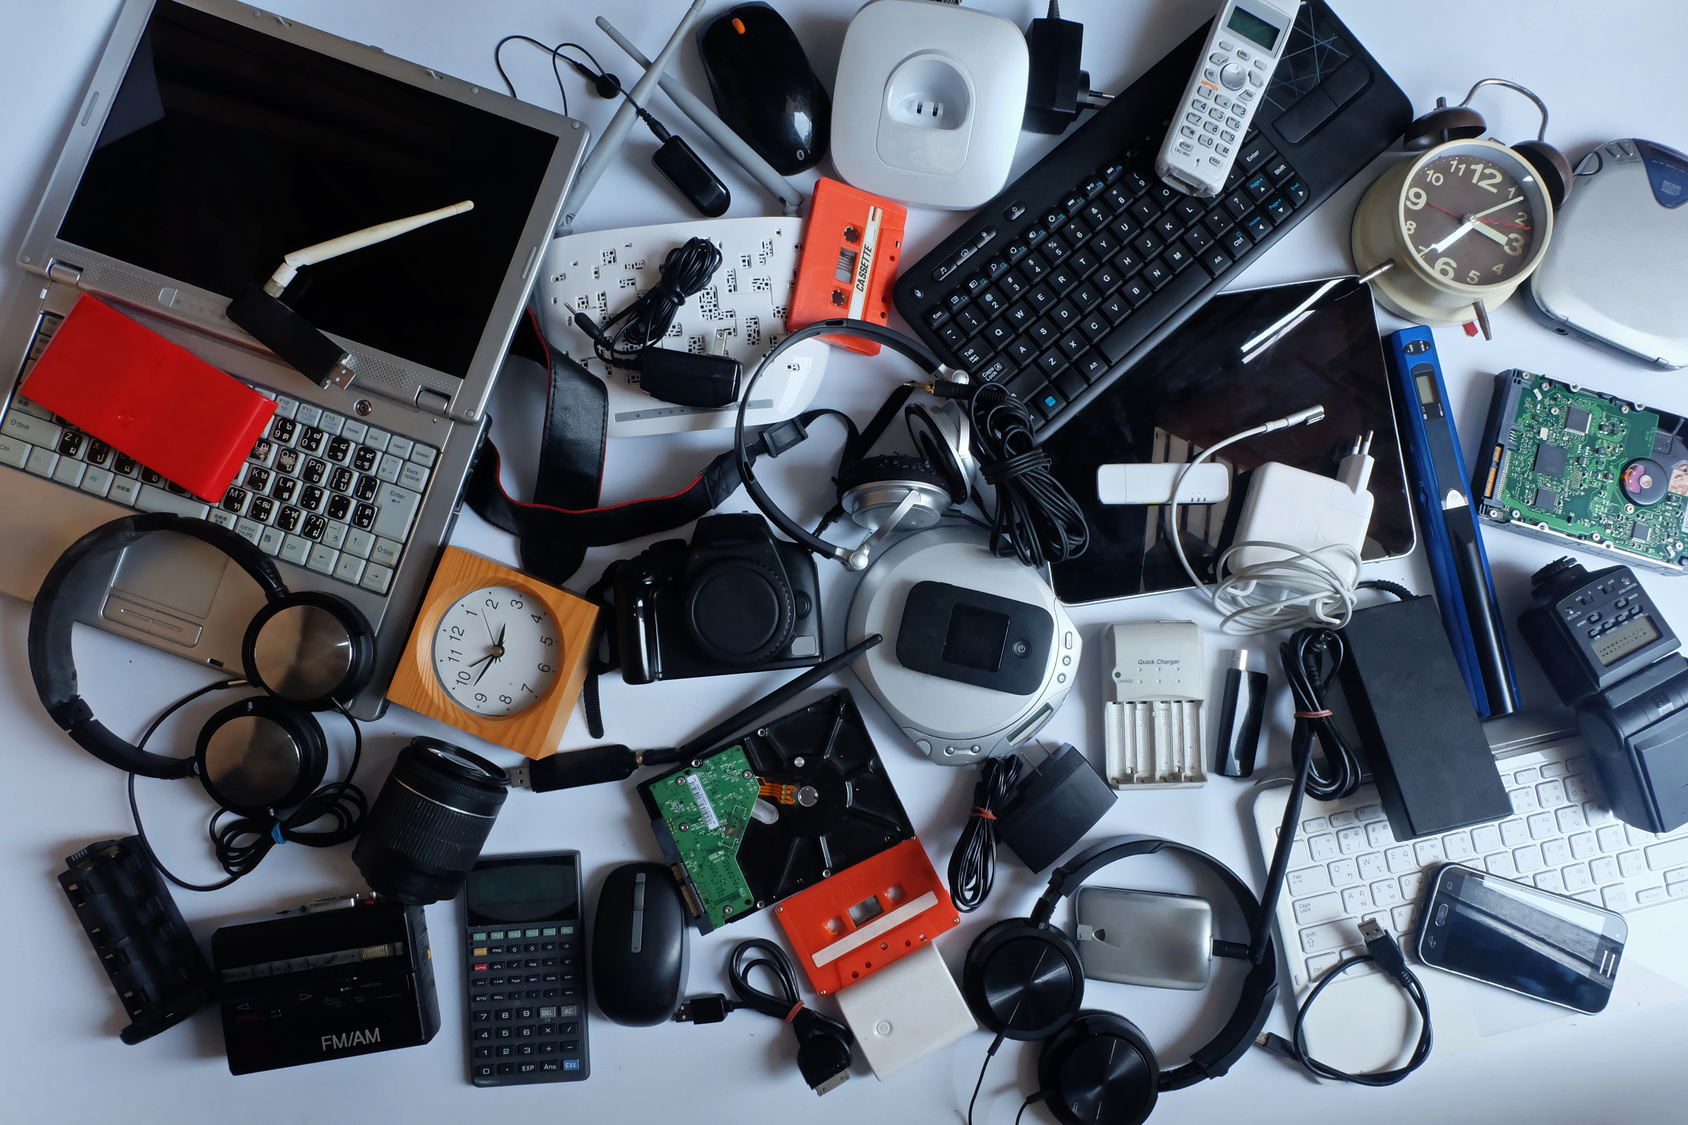 Recycling eWaste is Easier Than Ever